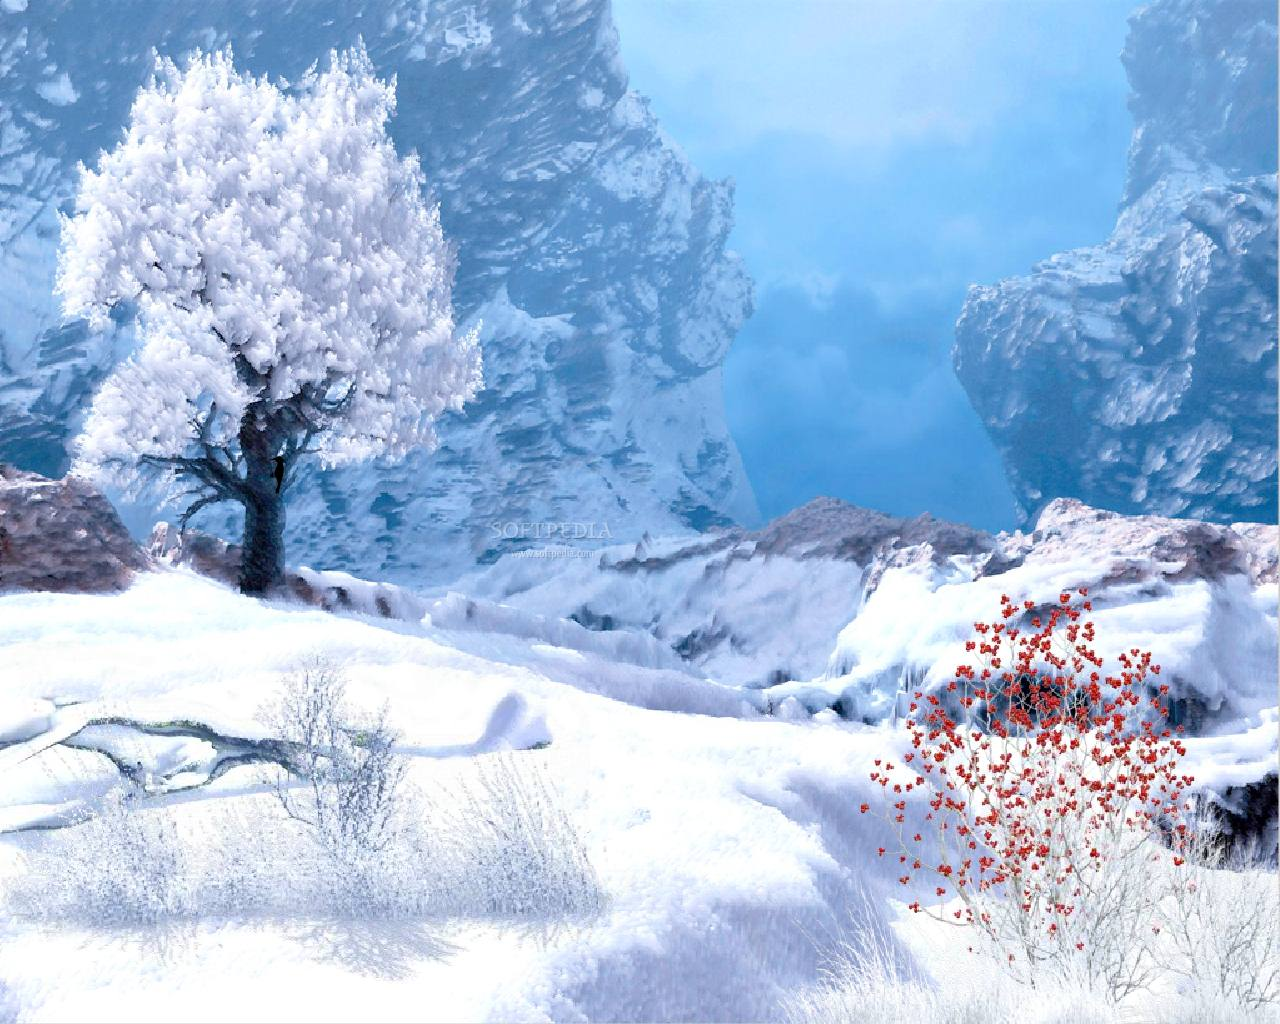 [50+] 3D Animated Winter Wallpaper Desktop On WallpaperSafari